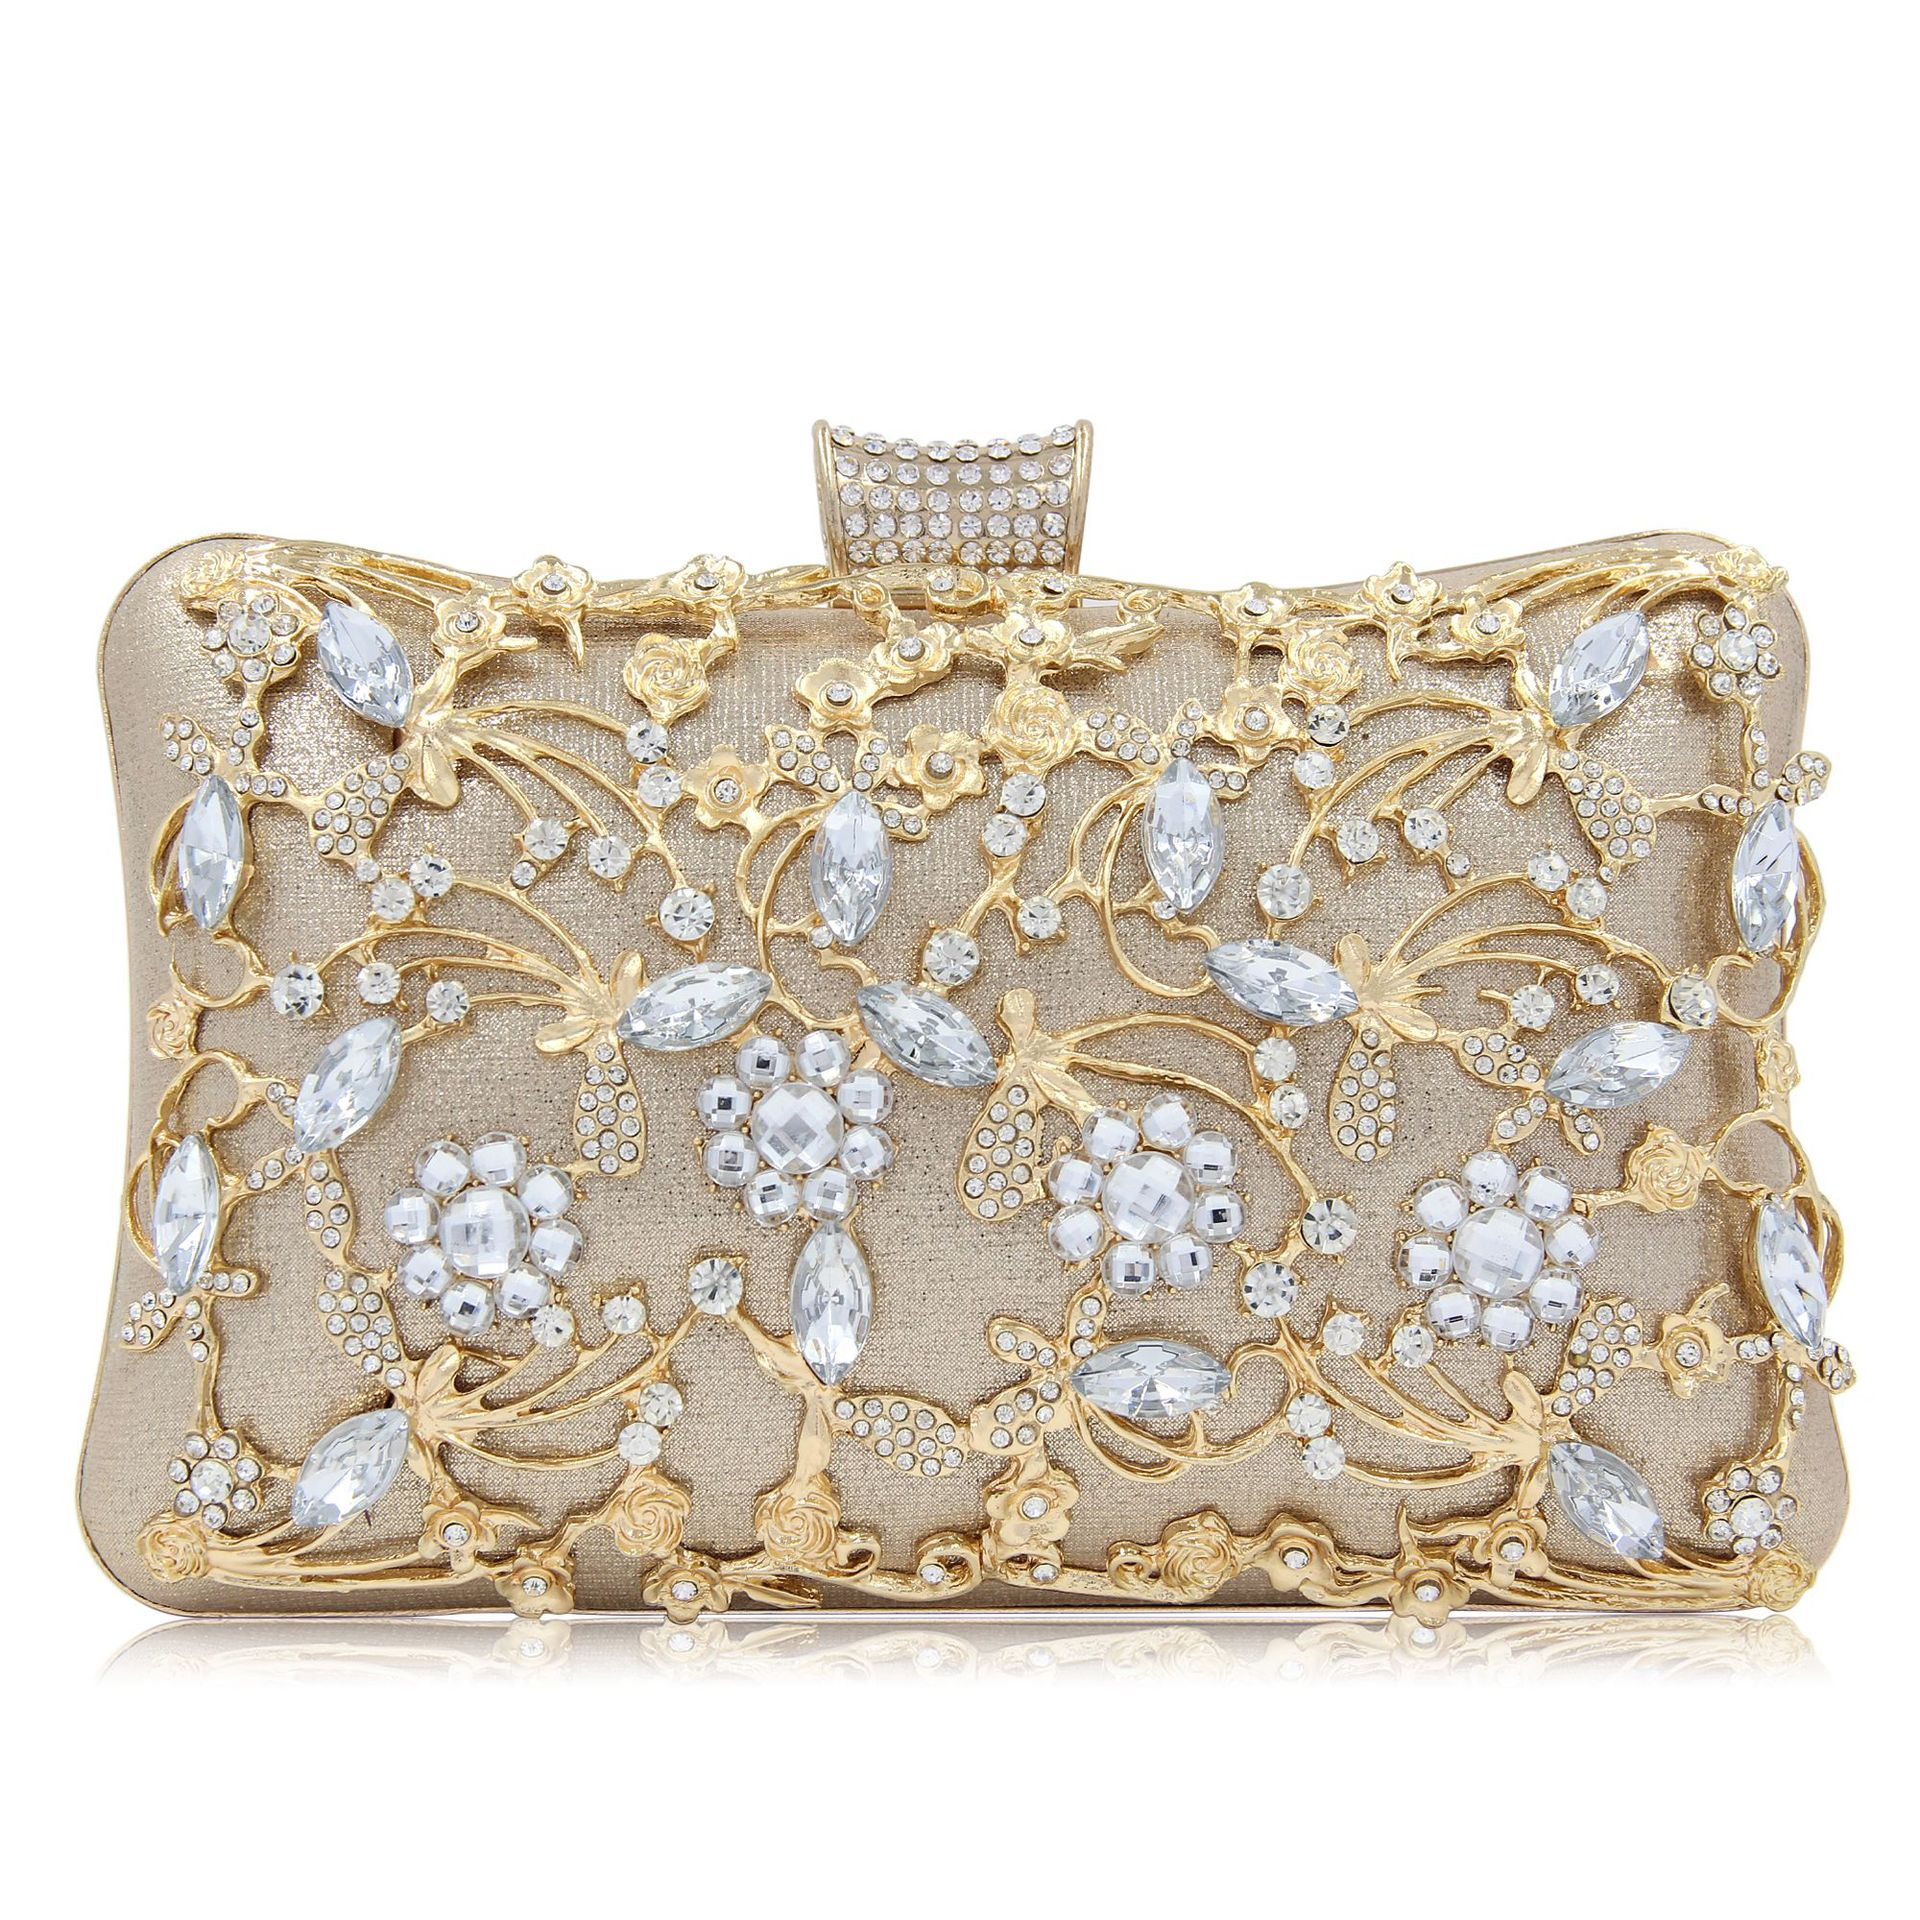 Hollow Diamond Women Evening Clutch Bags Cheongsam Bag Rhinestone Evening Party Bags Ladies Day Clutches Purses Shoulder Bags new women clutches crystal diamond buckle evening clutch bags ladies day clutches purses banquet bag